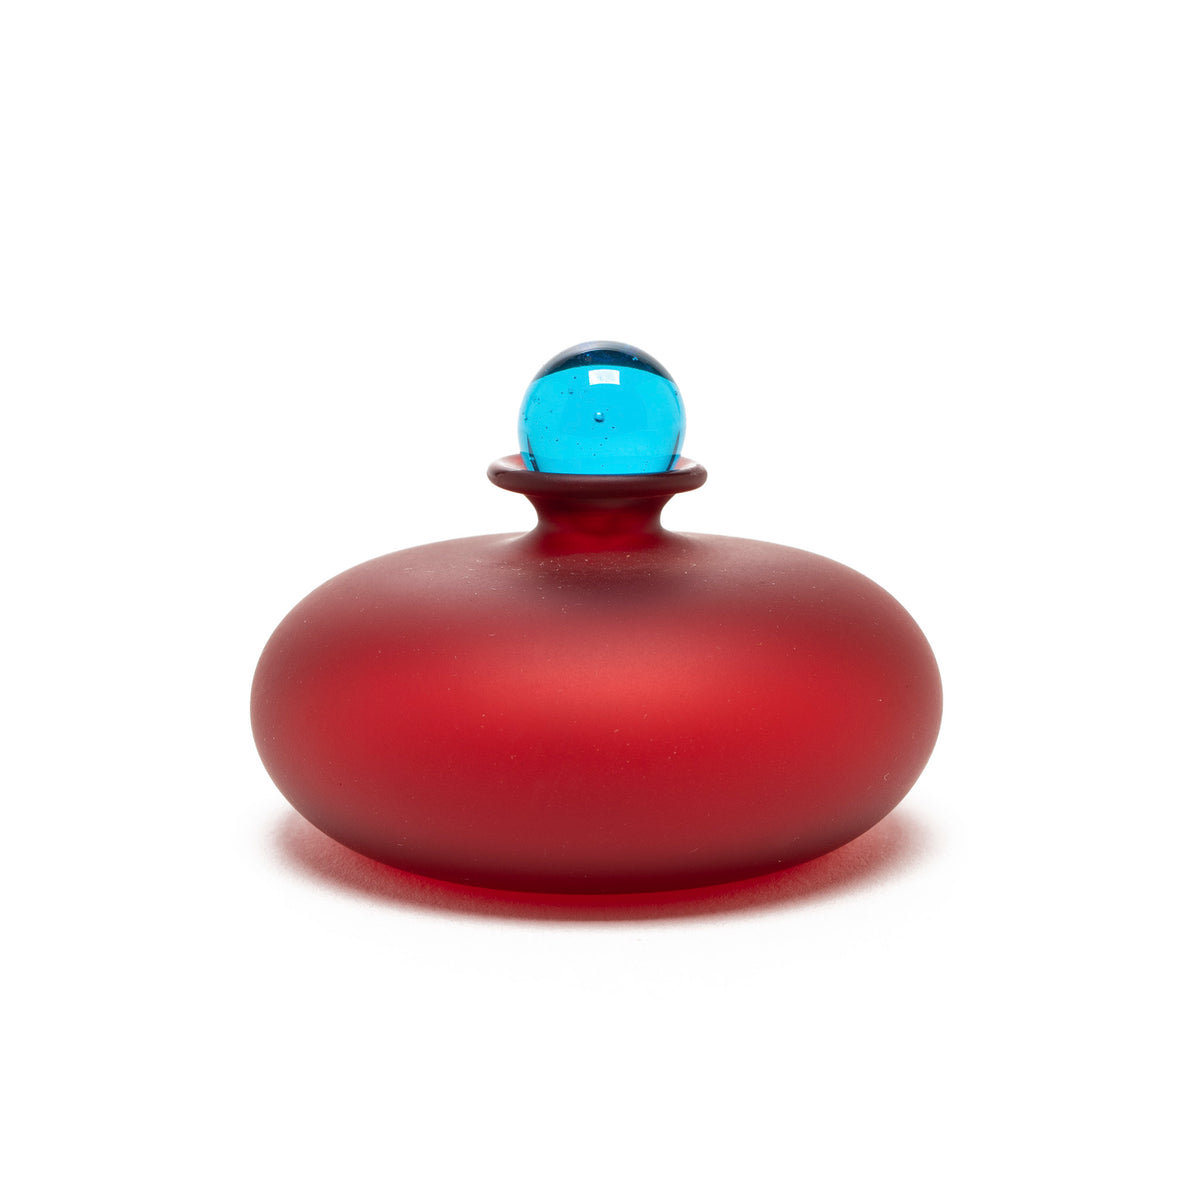 Murano Glass Perfume Bottle - Micro Flat Style in Red/Blue